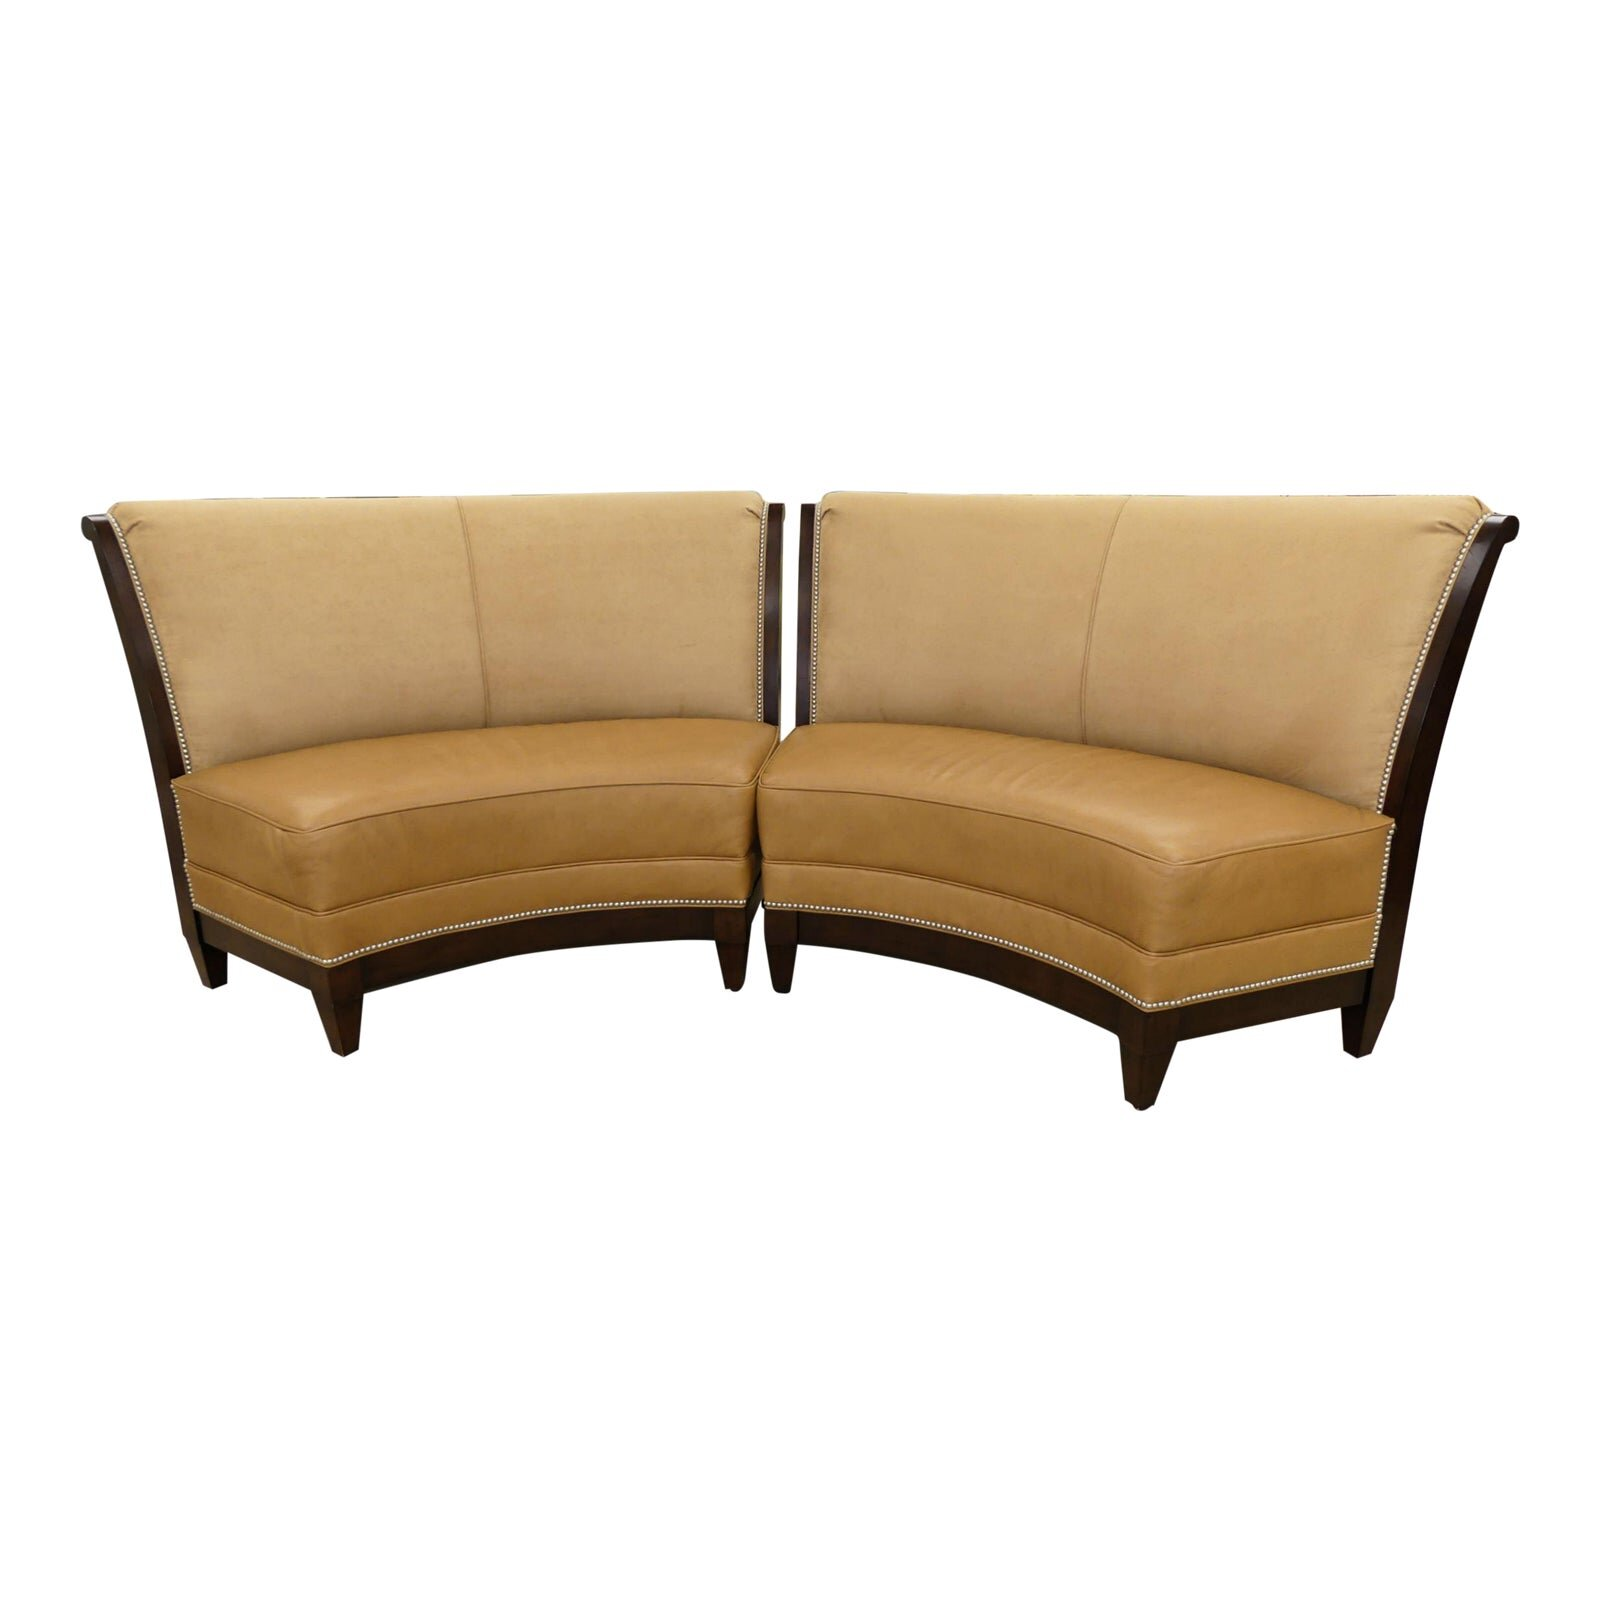 Pair of Stanford Garrett Leather & Suede Curved Benches